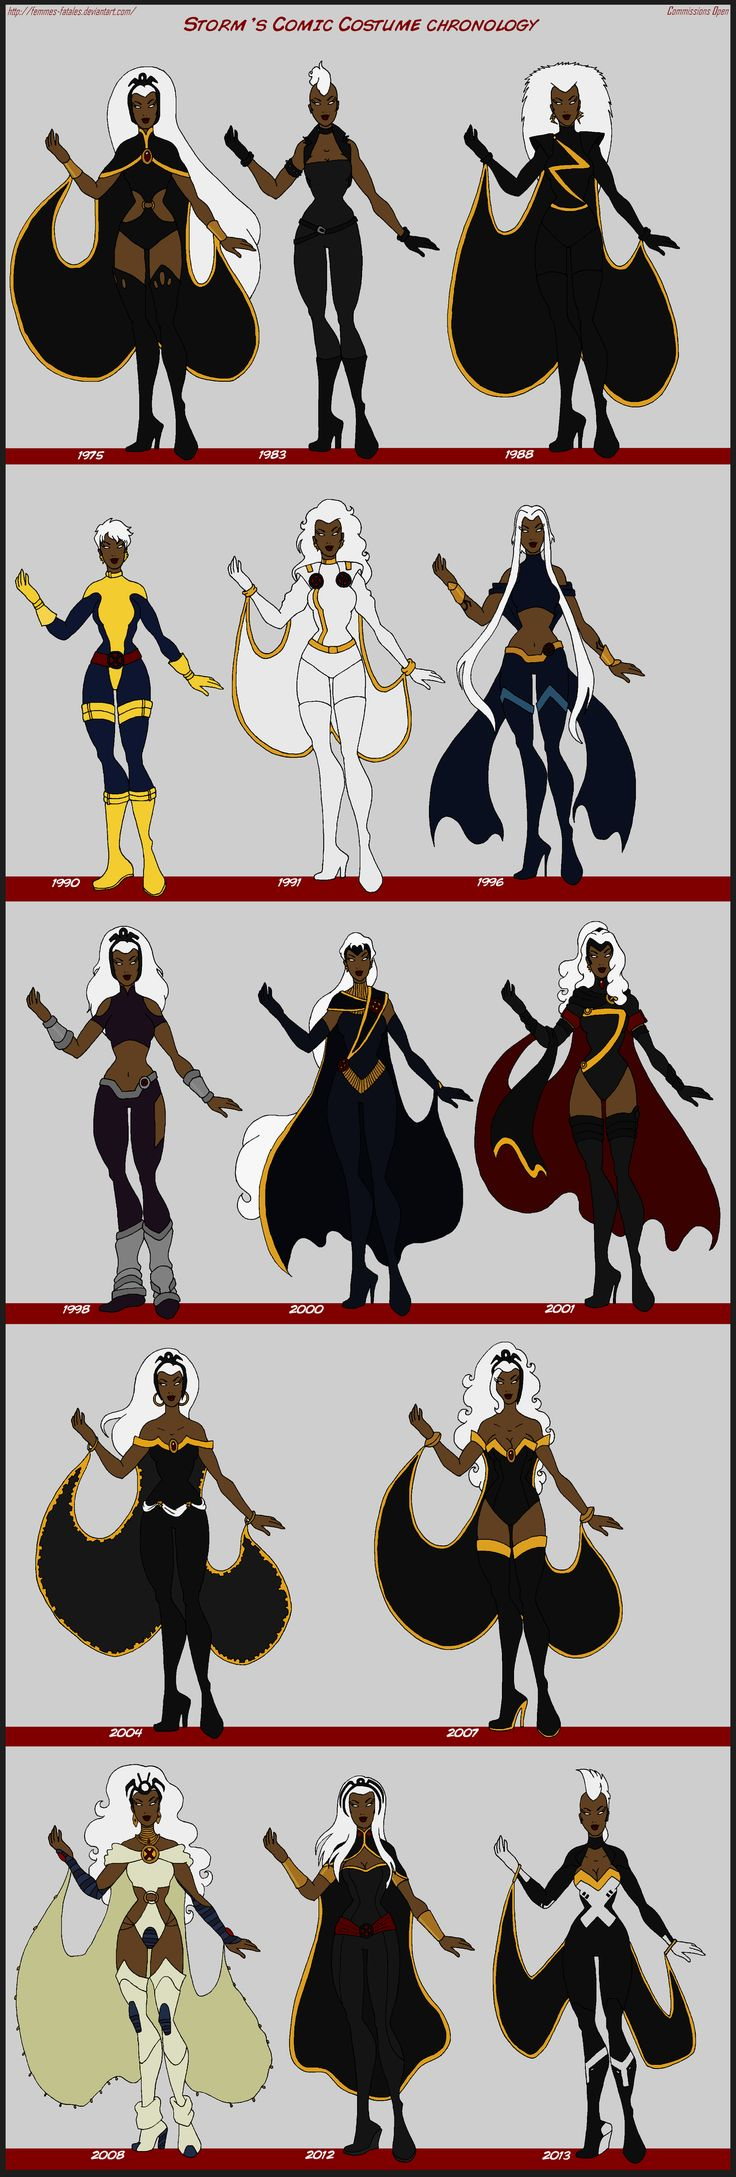 X-Men - Storm Comic Costume Chronology by Femmes-Fatales.deviantart.com on @deviantART